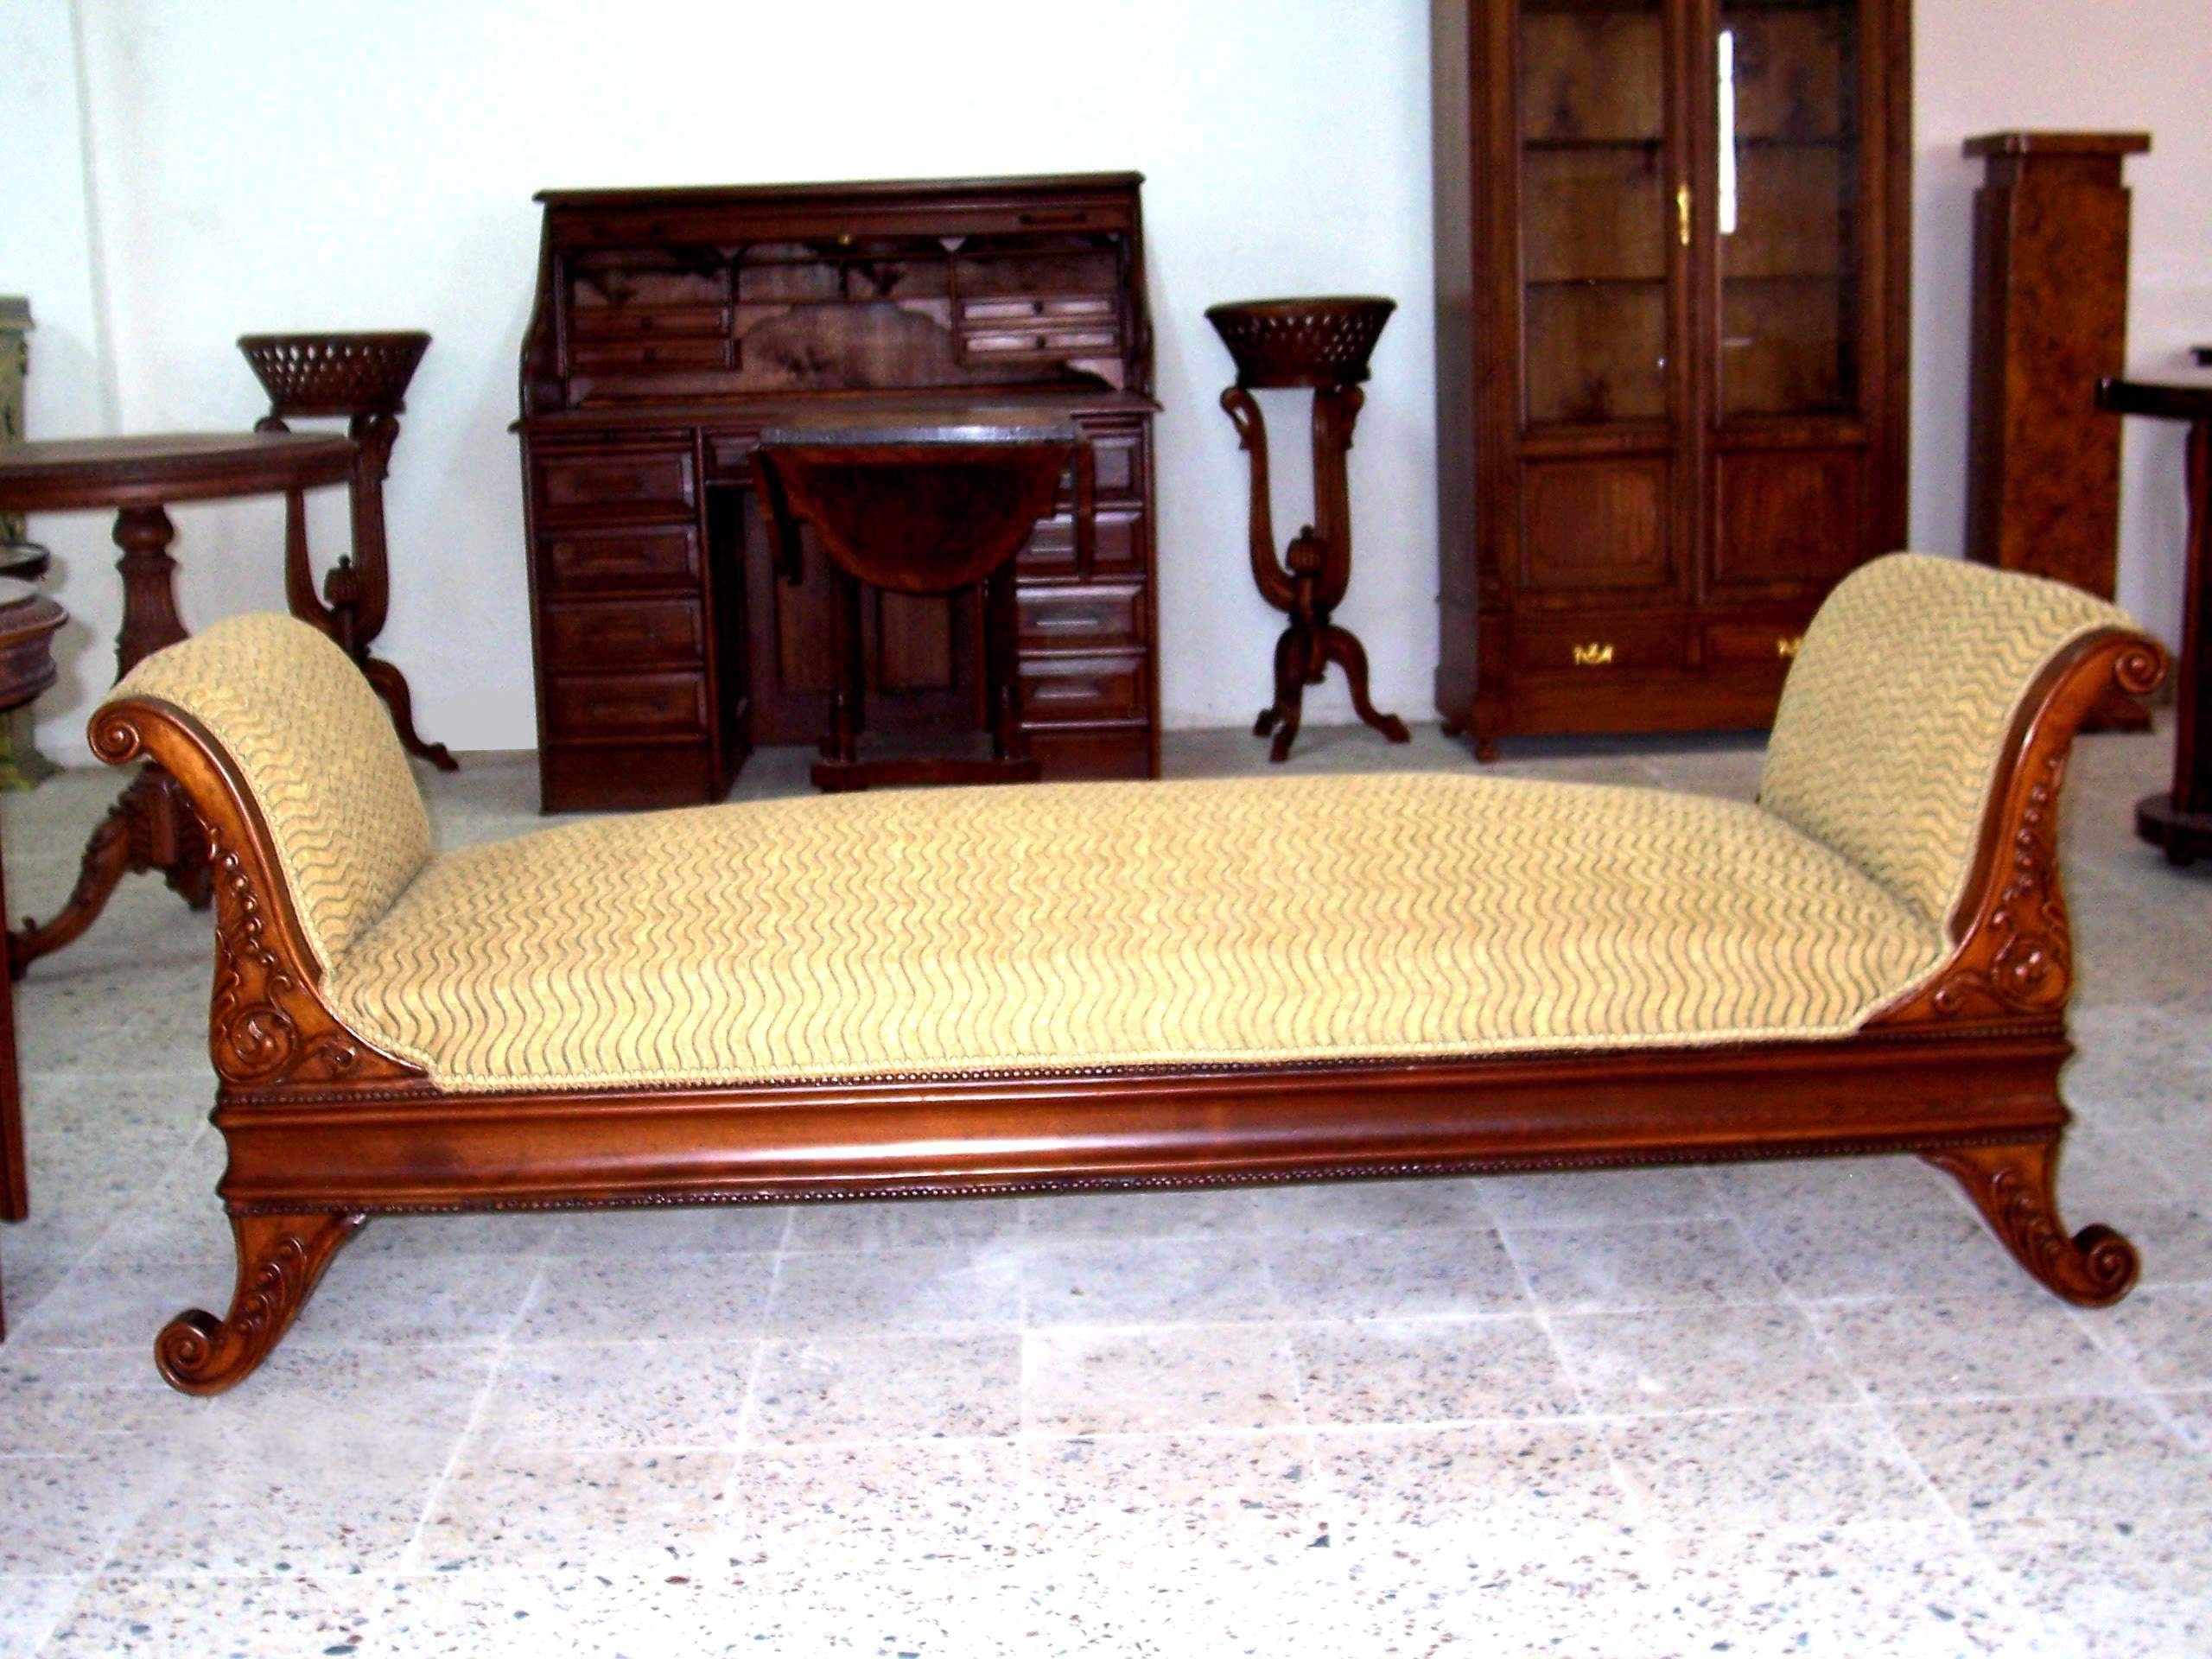 Most Recent Simple Victorian Chaise Lounge – Home Design And Decor Inside Victorian Chaise Lounges (View 11 of 15)